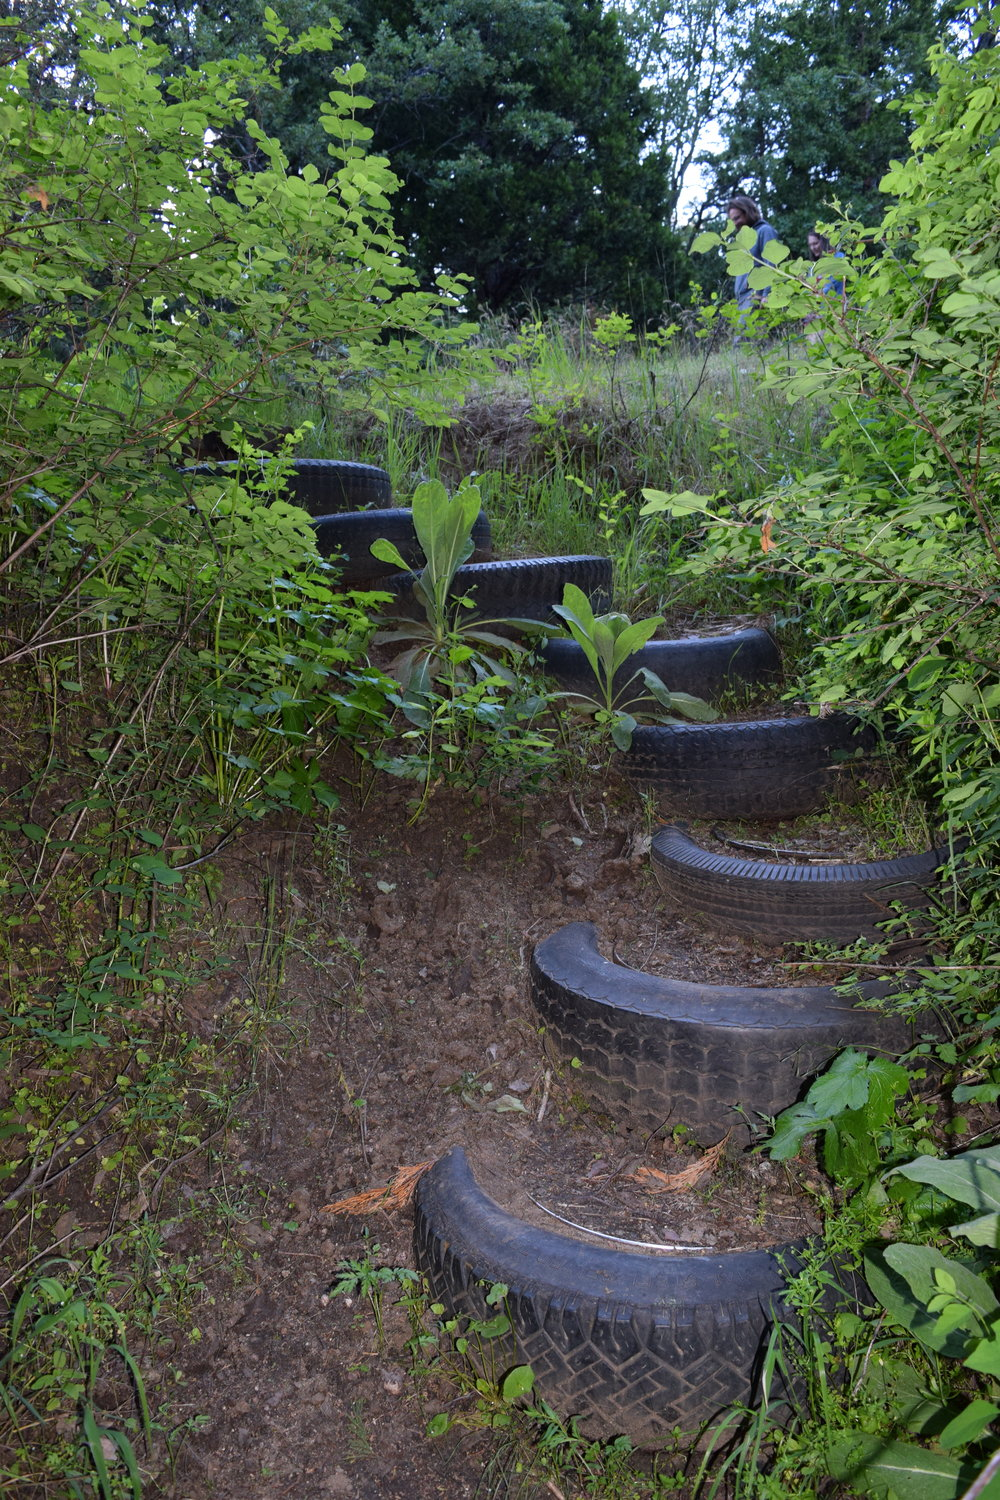 A clever way to make steps and put old junk tires to good use